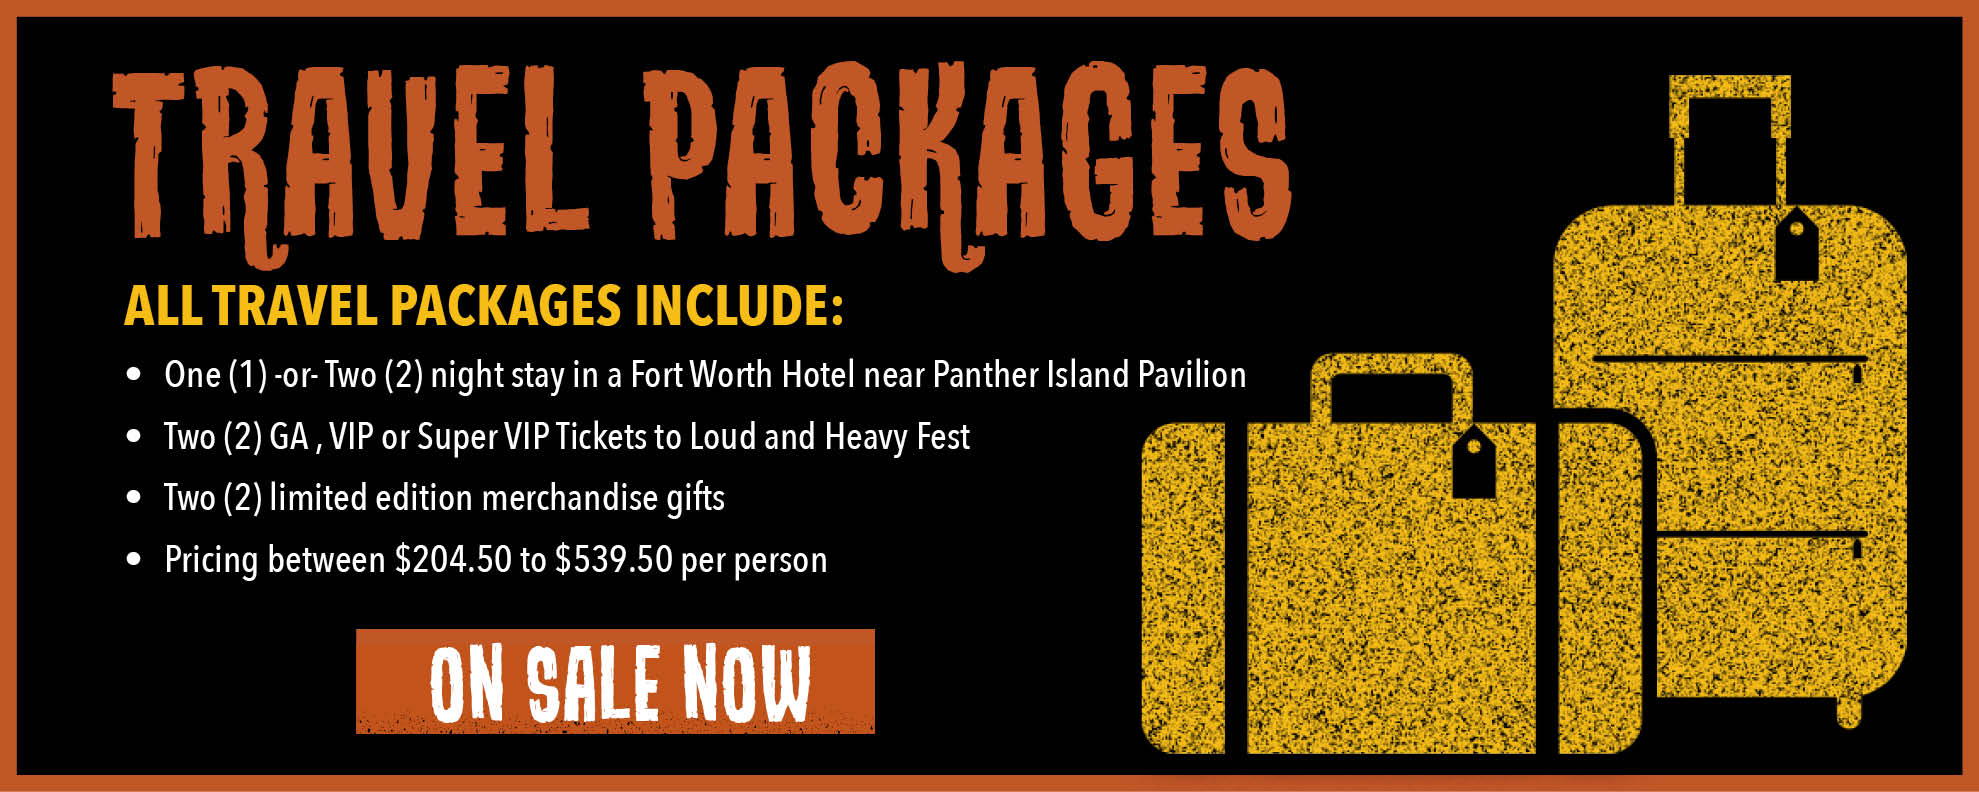 Travel packages on sale June 15